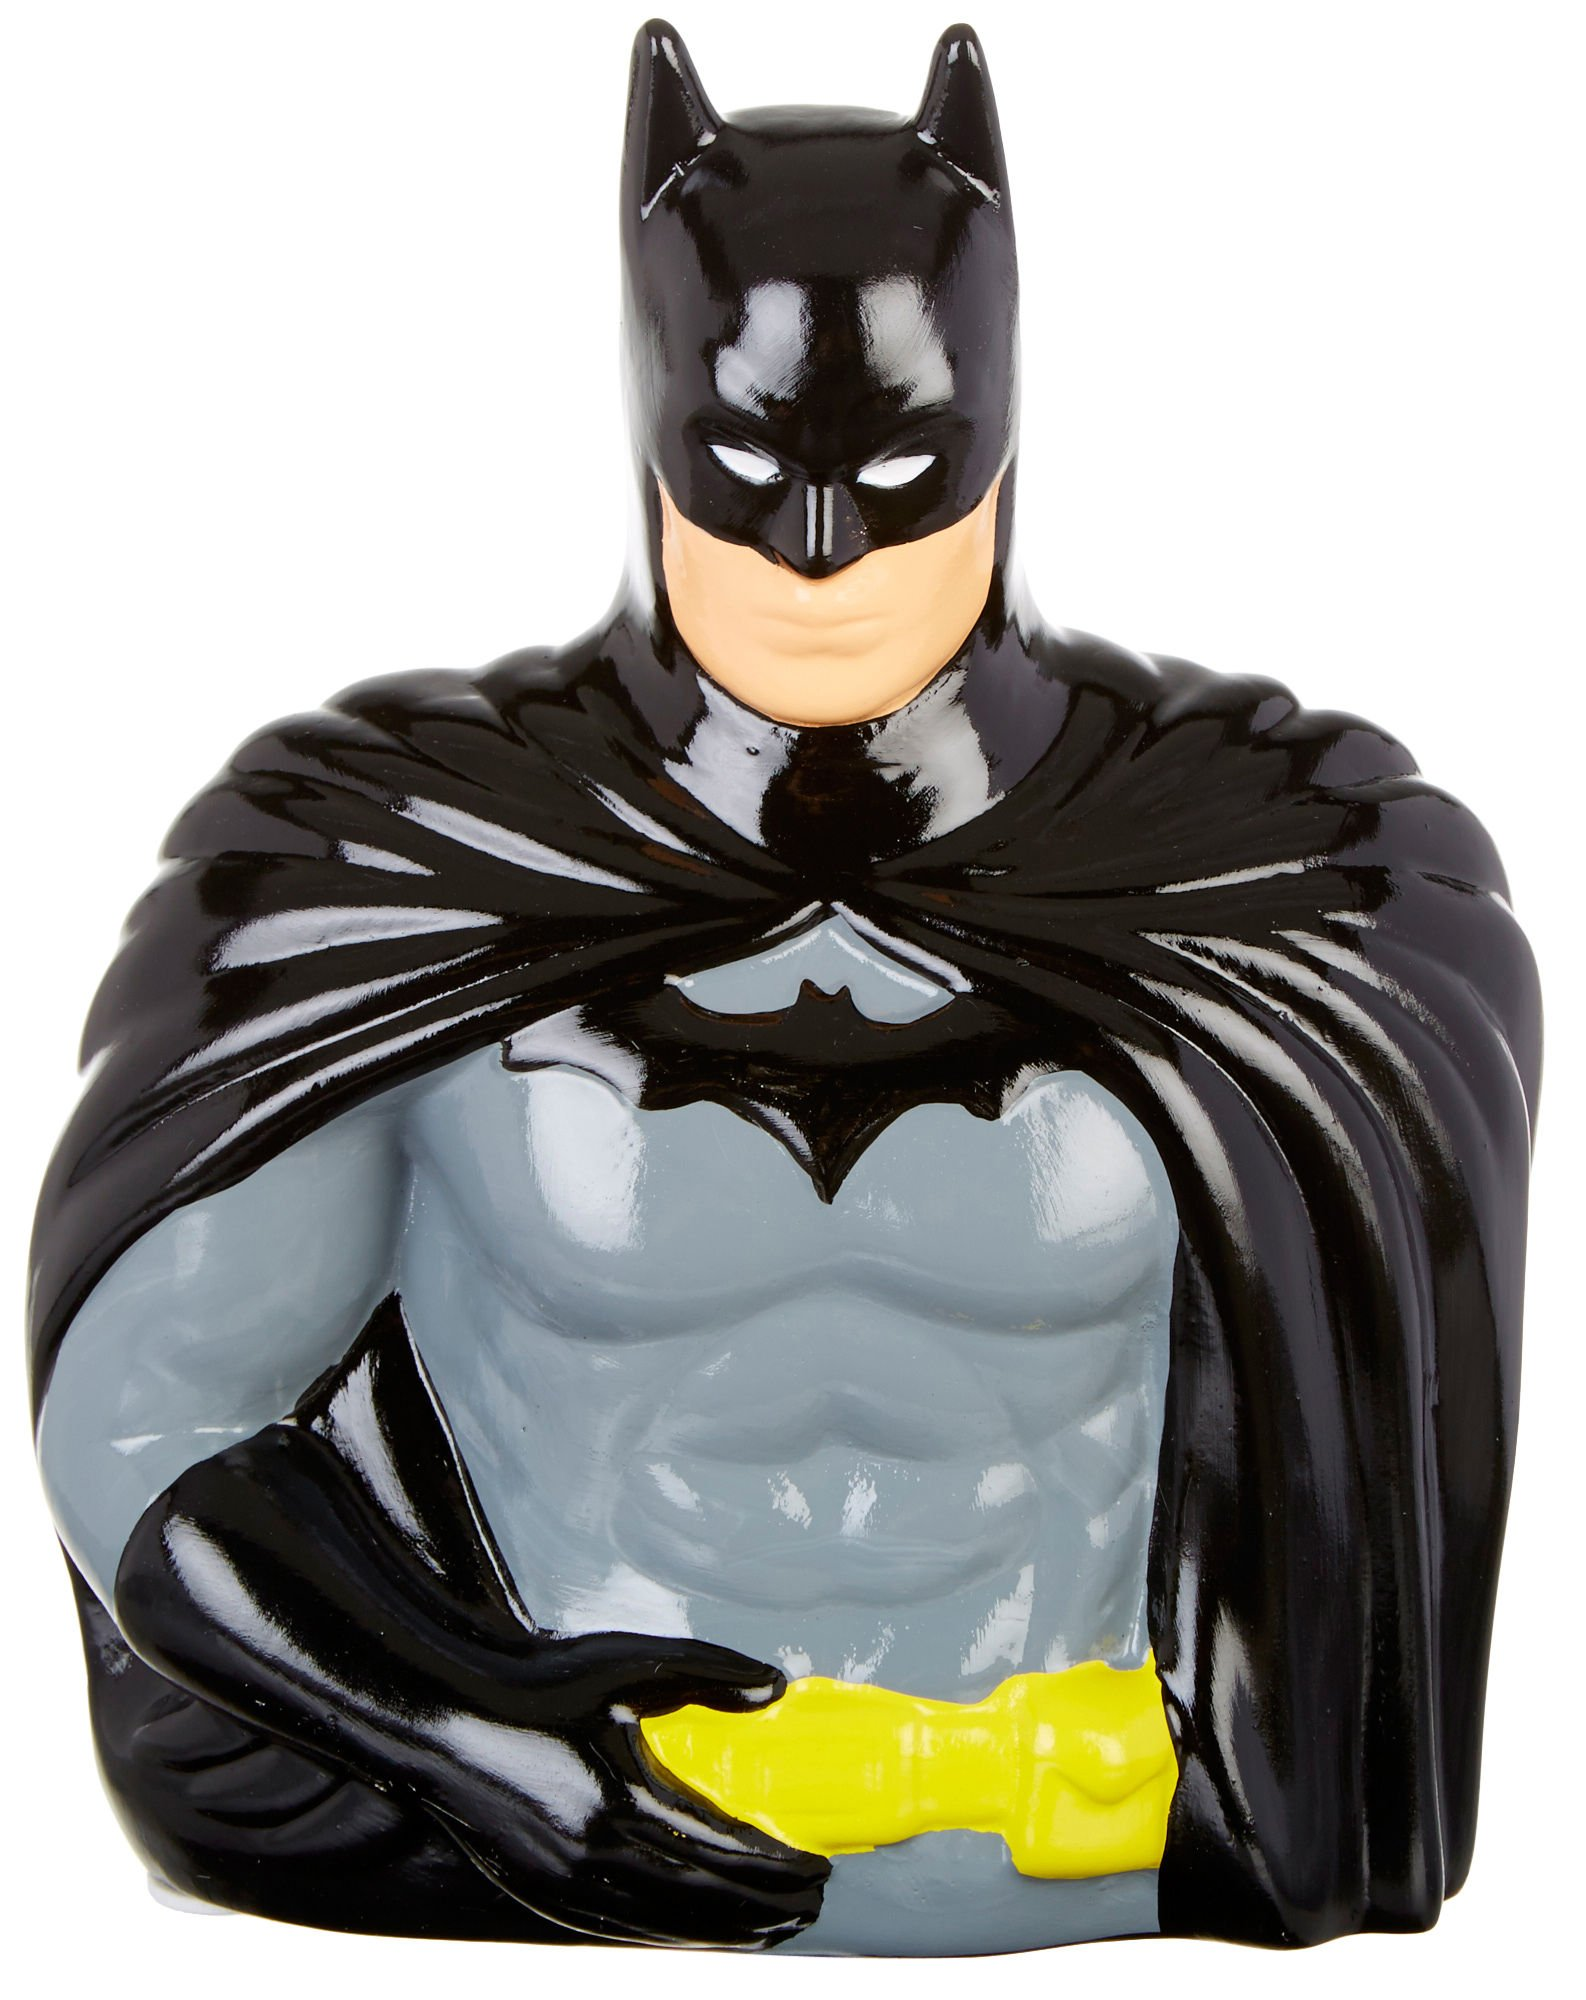 Official Brand New Batman Coin Bank in a Colored Box- One Size by Batman